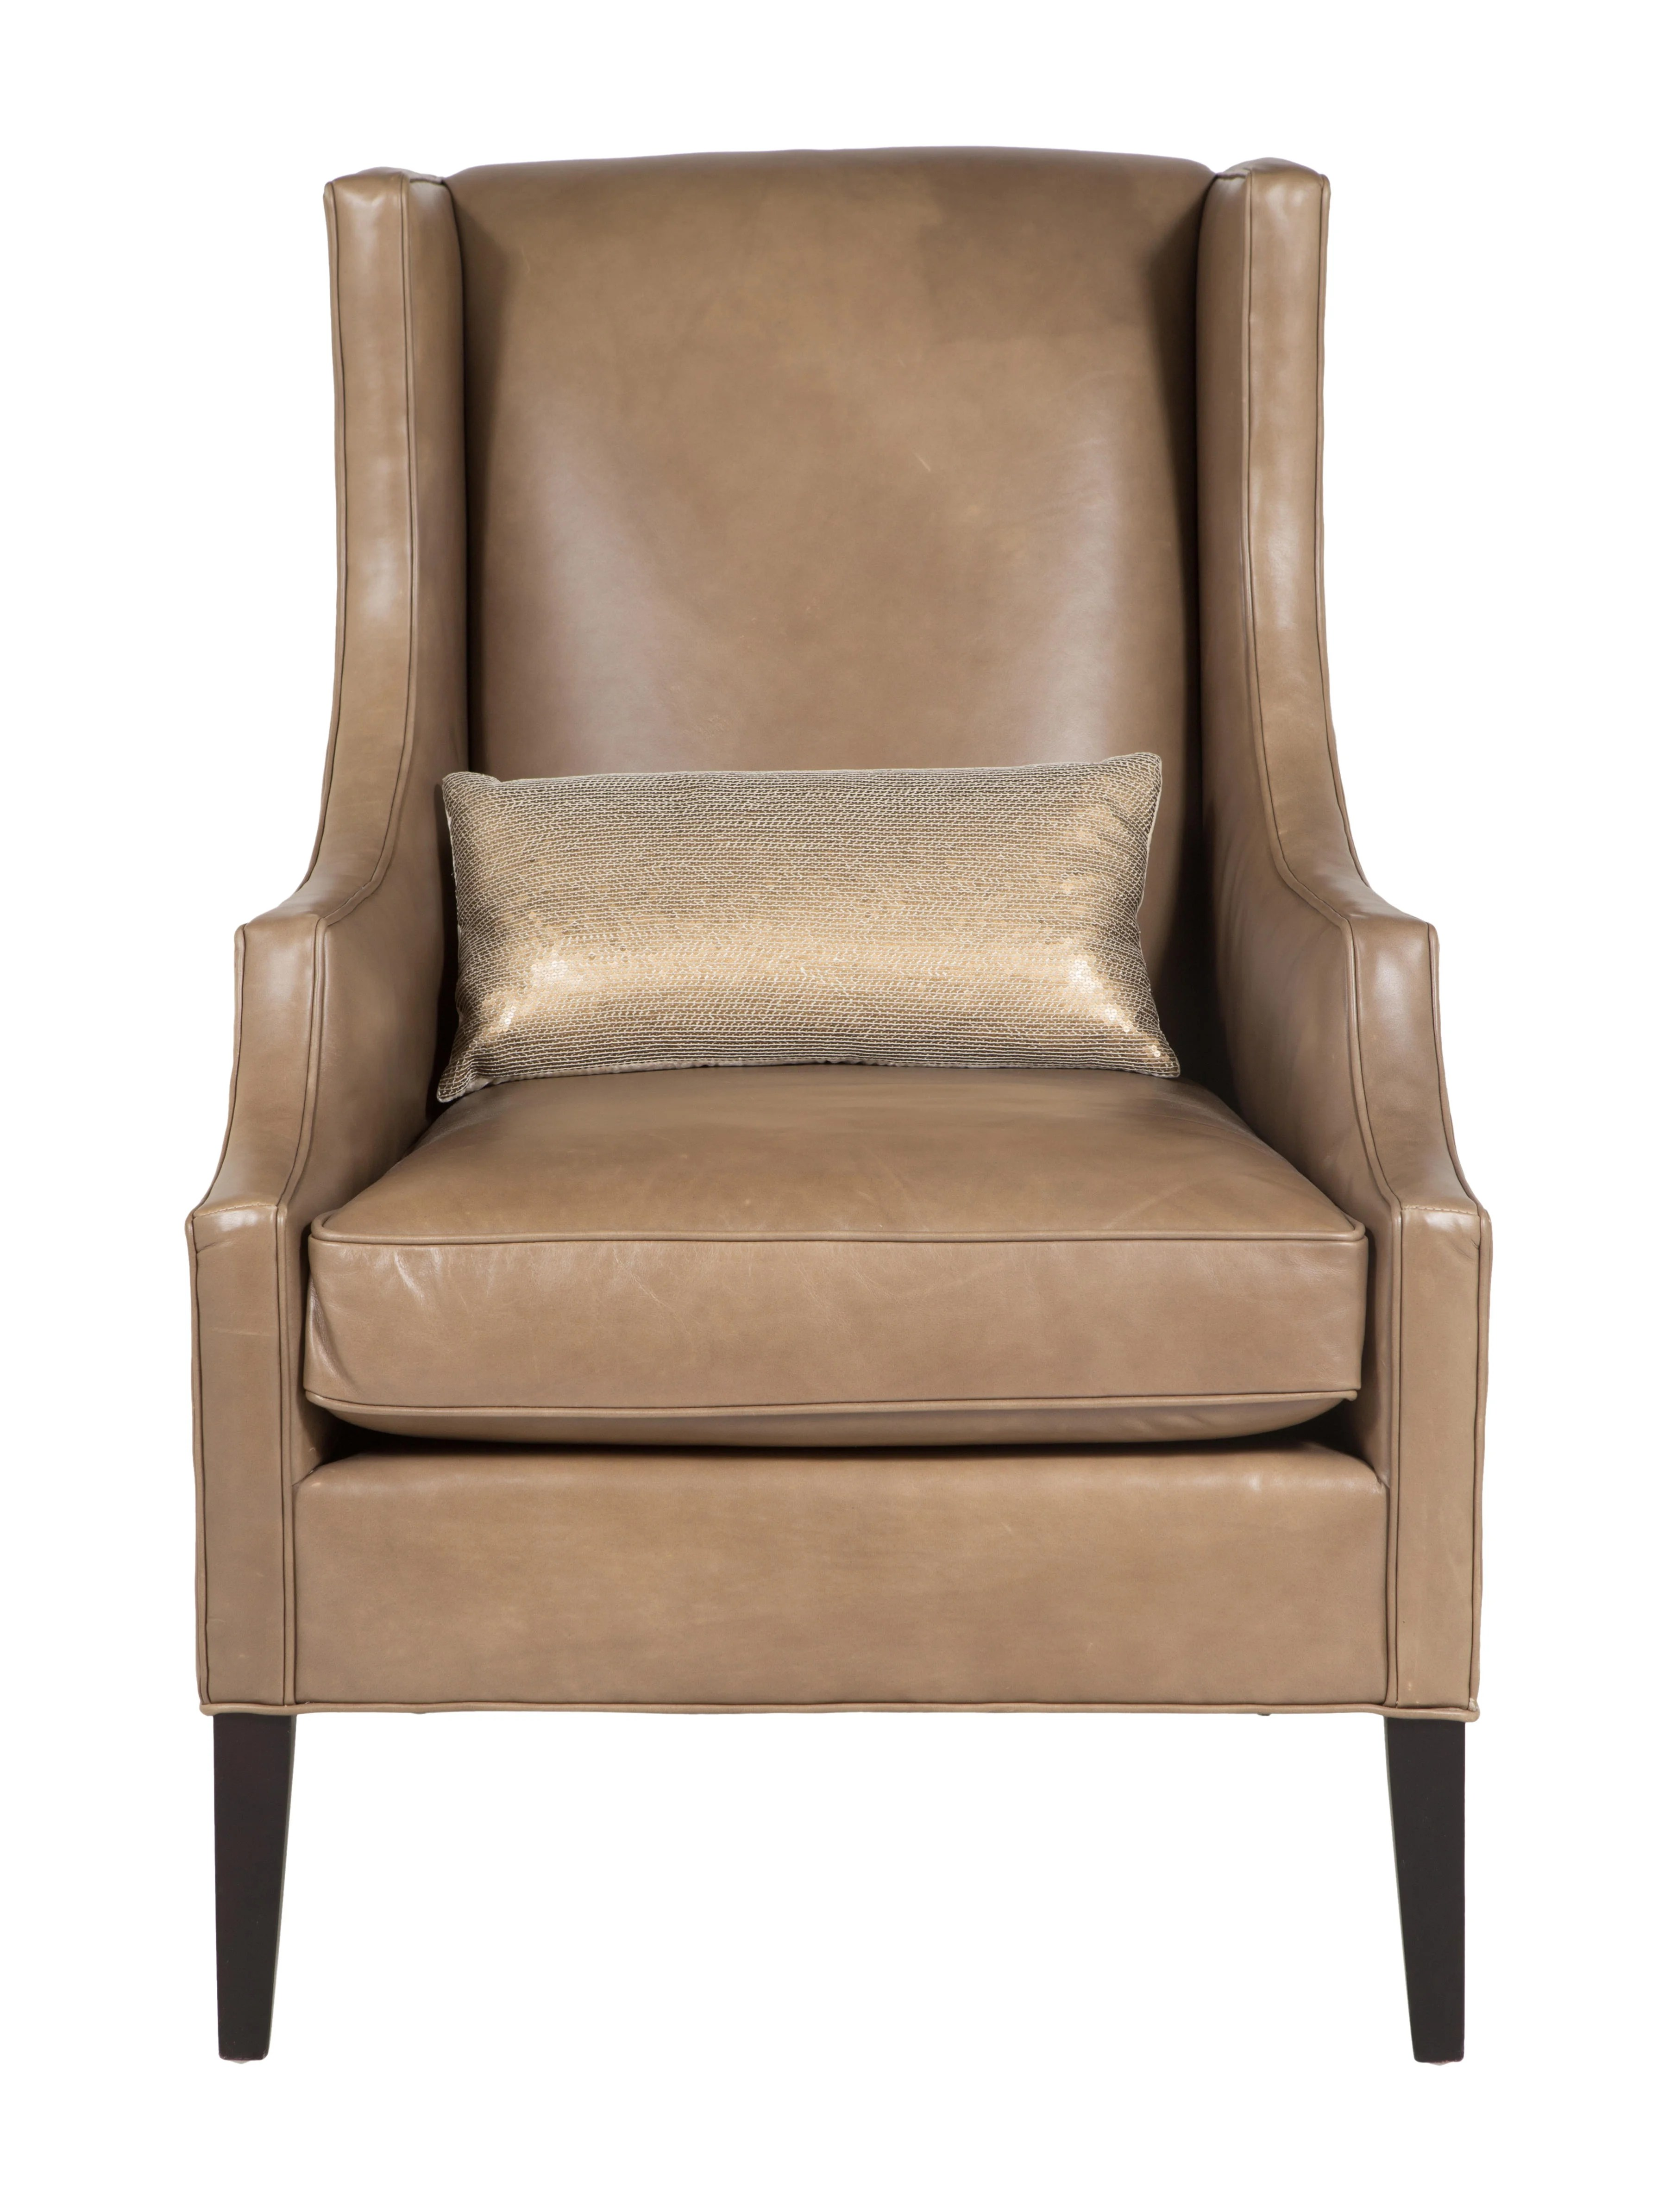 mitchell gold chairs soccer chair and ottoman 43 bob williams james vegan leather wing